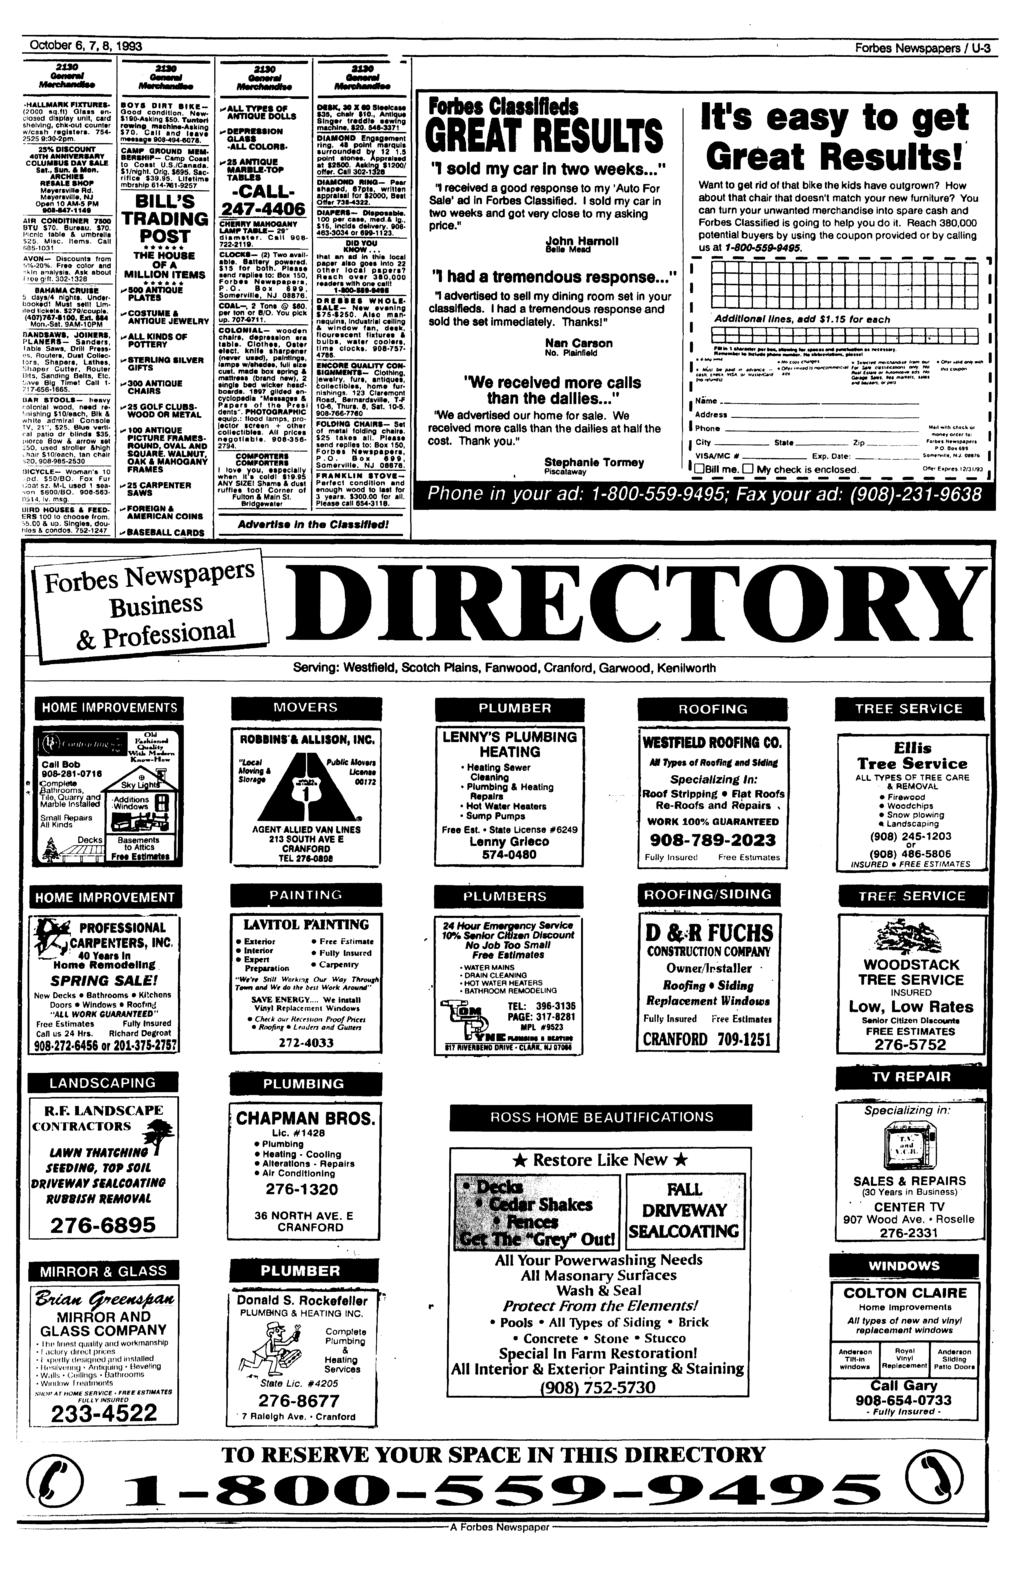 October 6, 7,8,1993 Forbes Newspapers / U-3 asso 2130 2190 31*0 HALLMARK FIXTURES' (2000 sq.lt) Glais enclosed display unit, card shelving, chk-out counter w/cash register*. 754-2525 9:30-2pm.